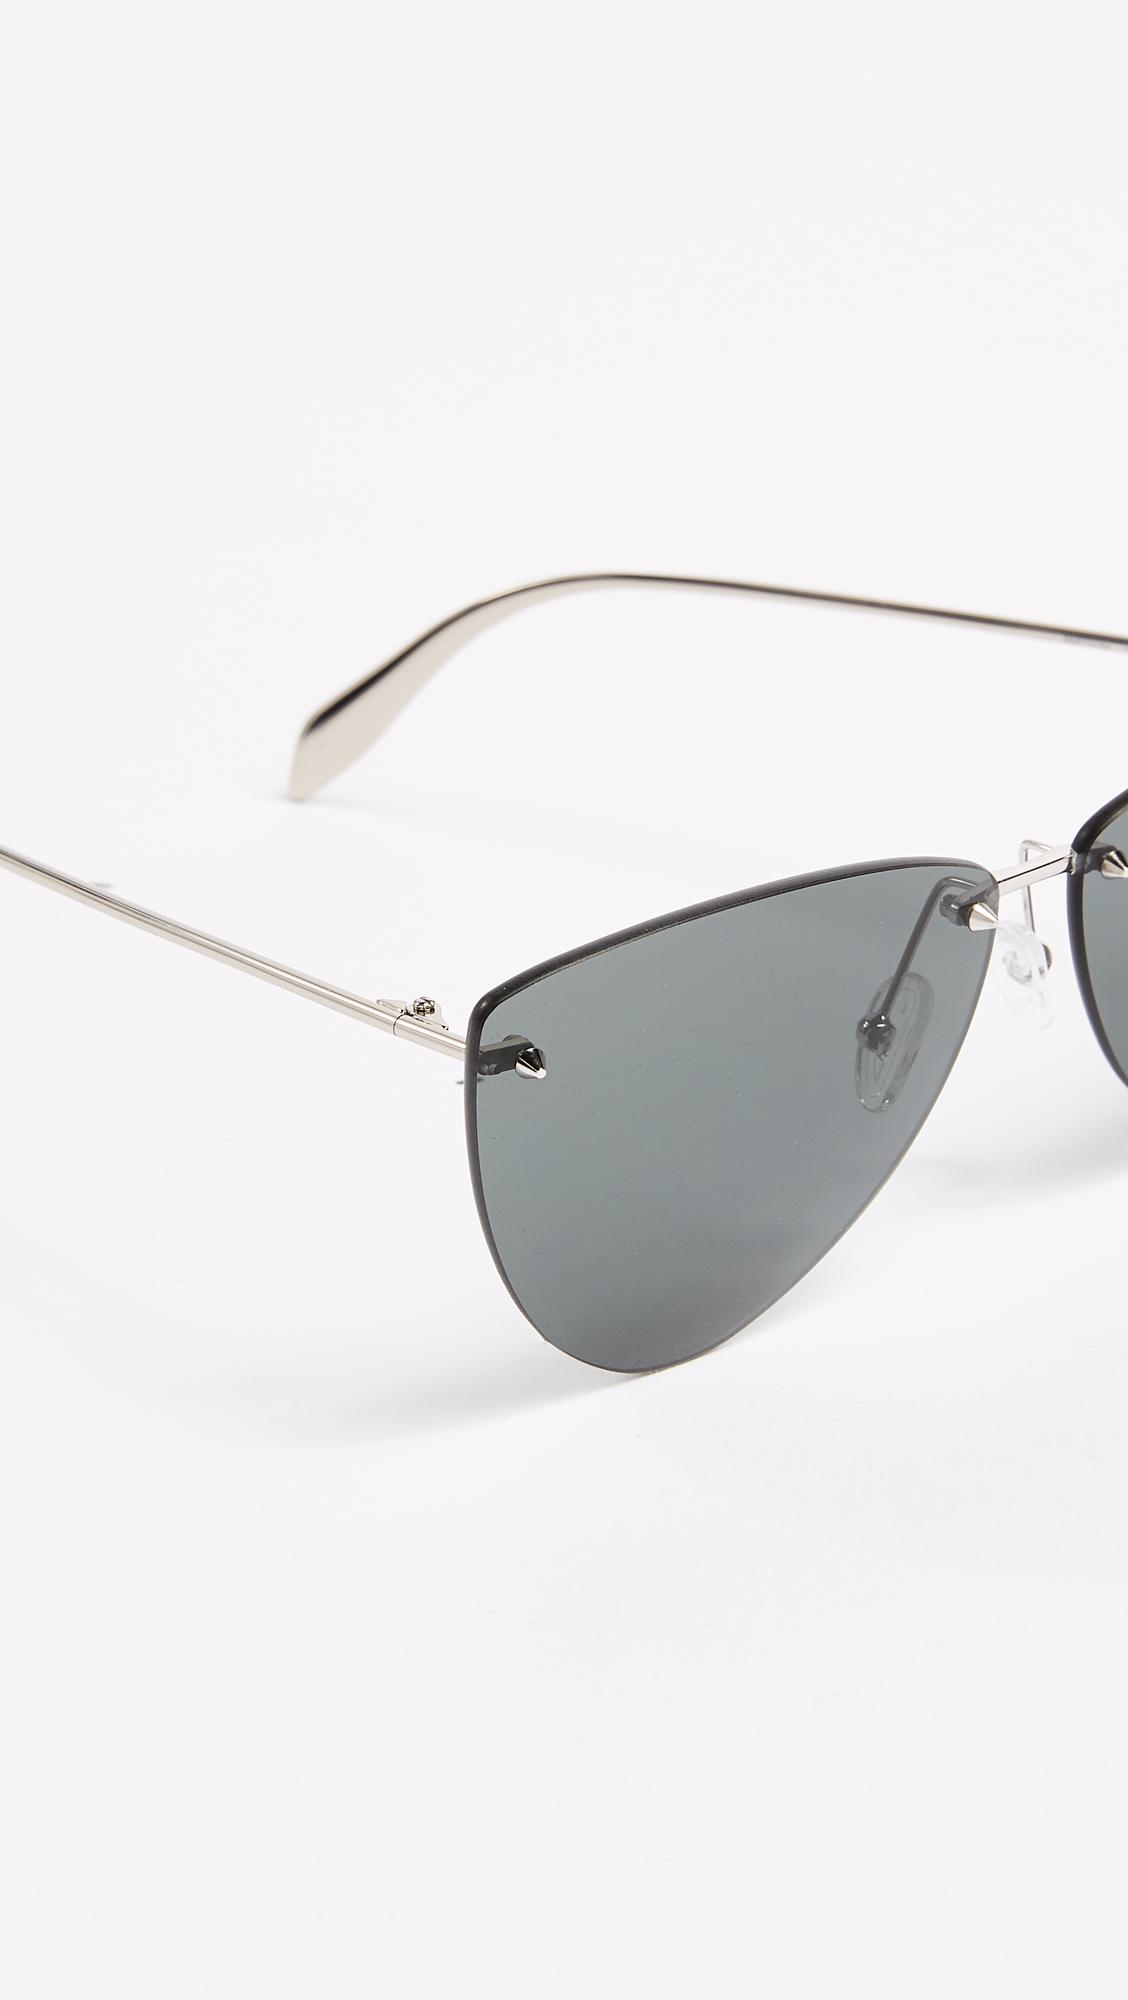 Alexander McQueen Pinched Shield Sunglasses in Silver/Grey (Grey)